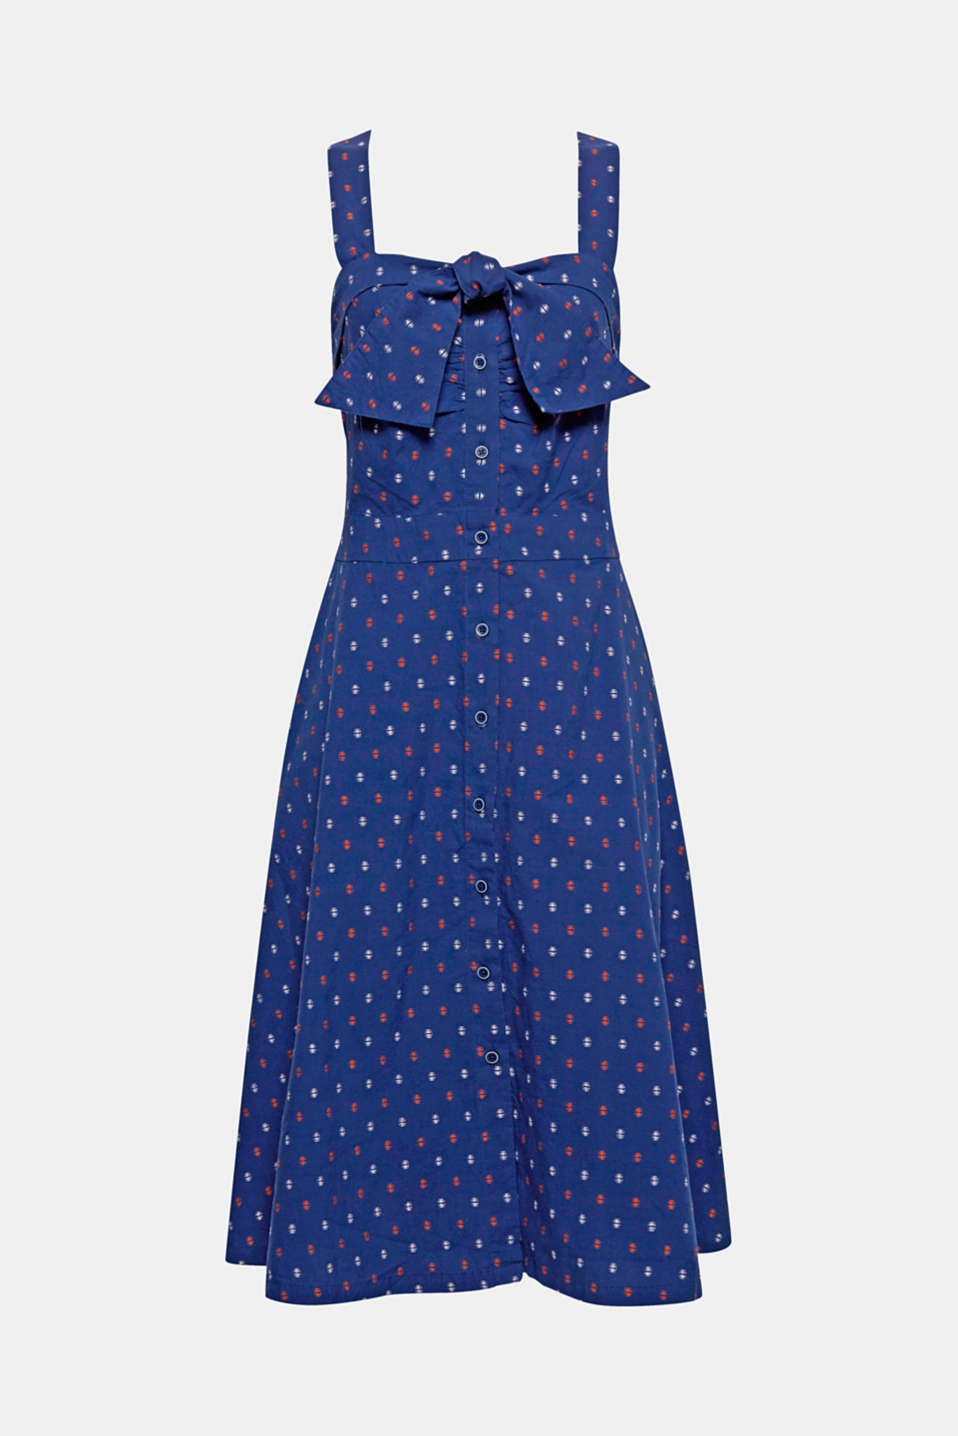 So retro: A feminine A-silhouette, pure cotton fabric with a decorative woven pattern and a dainty bow detail make this dress the perfect summer companion.